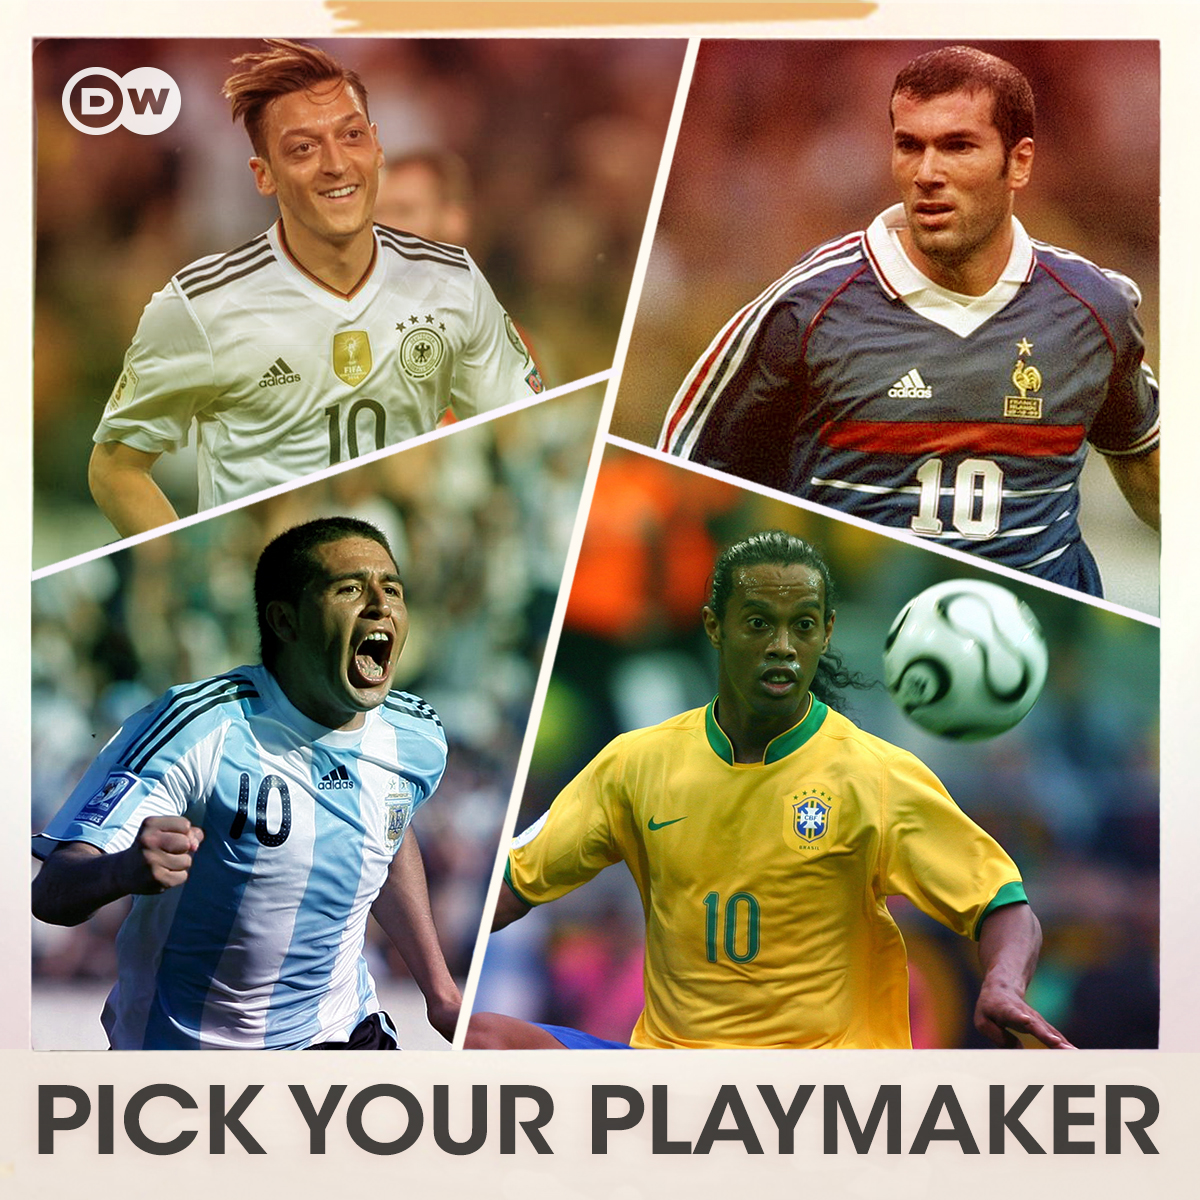 You can choose one playmaker to start with in a World Cup final. Who's it going to be?